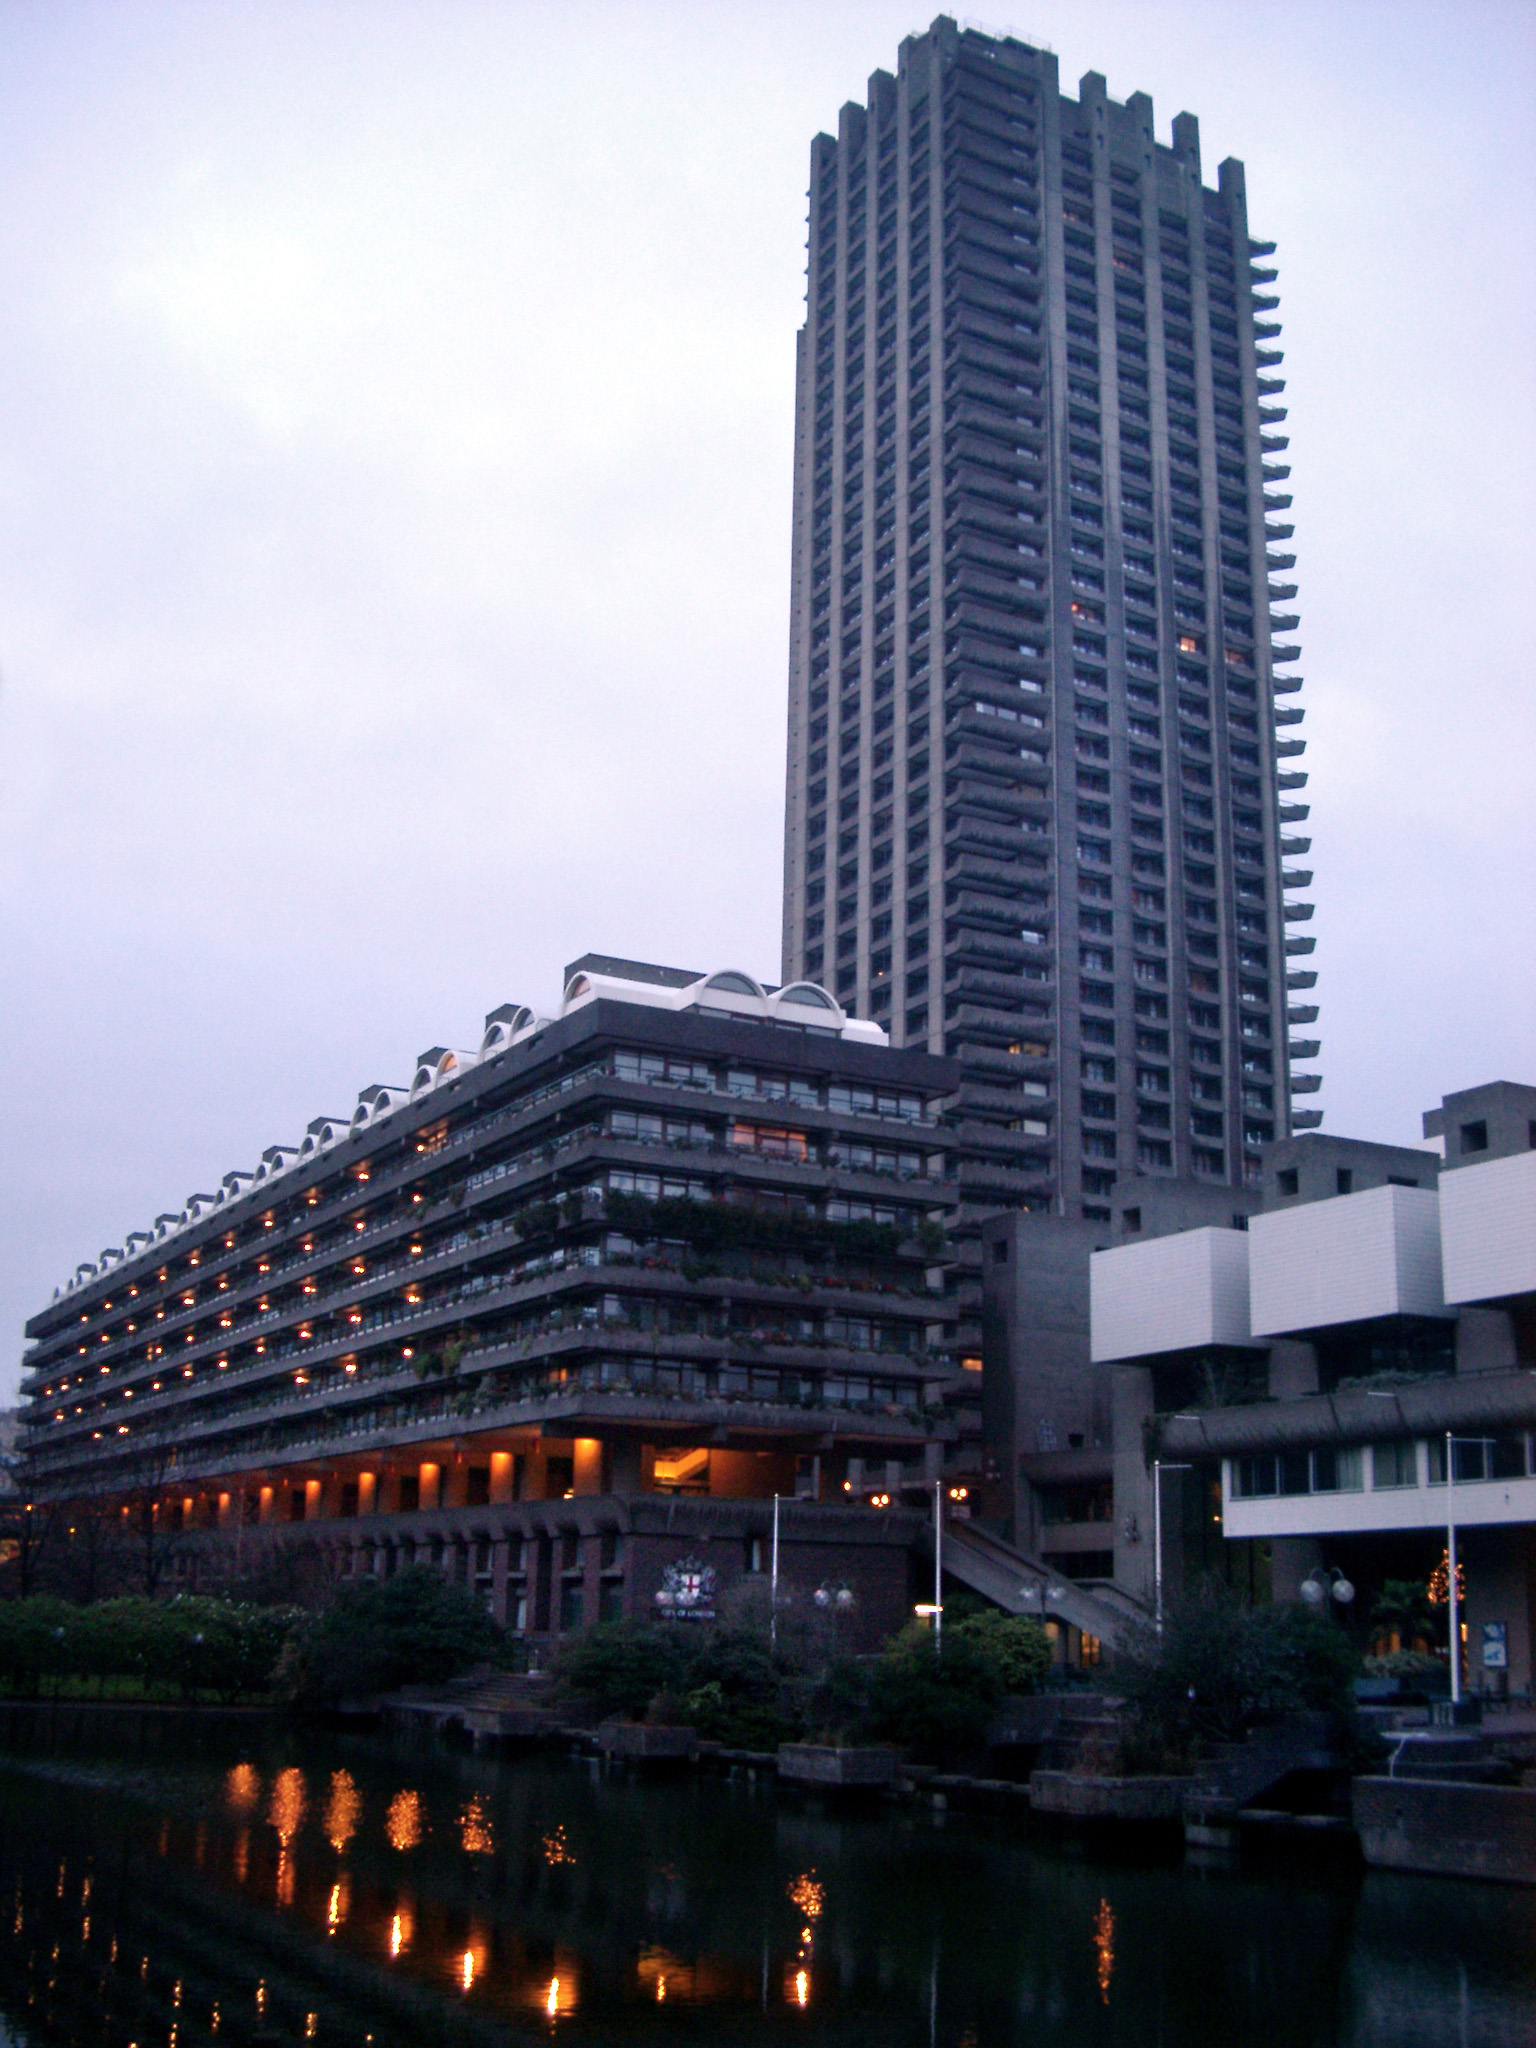 Brutalist Architecture at the Barbican Arts Centre in London, England. Captured at Night Time.